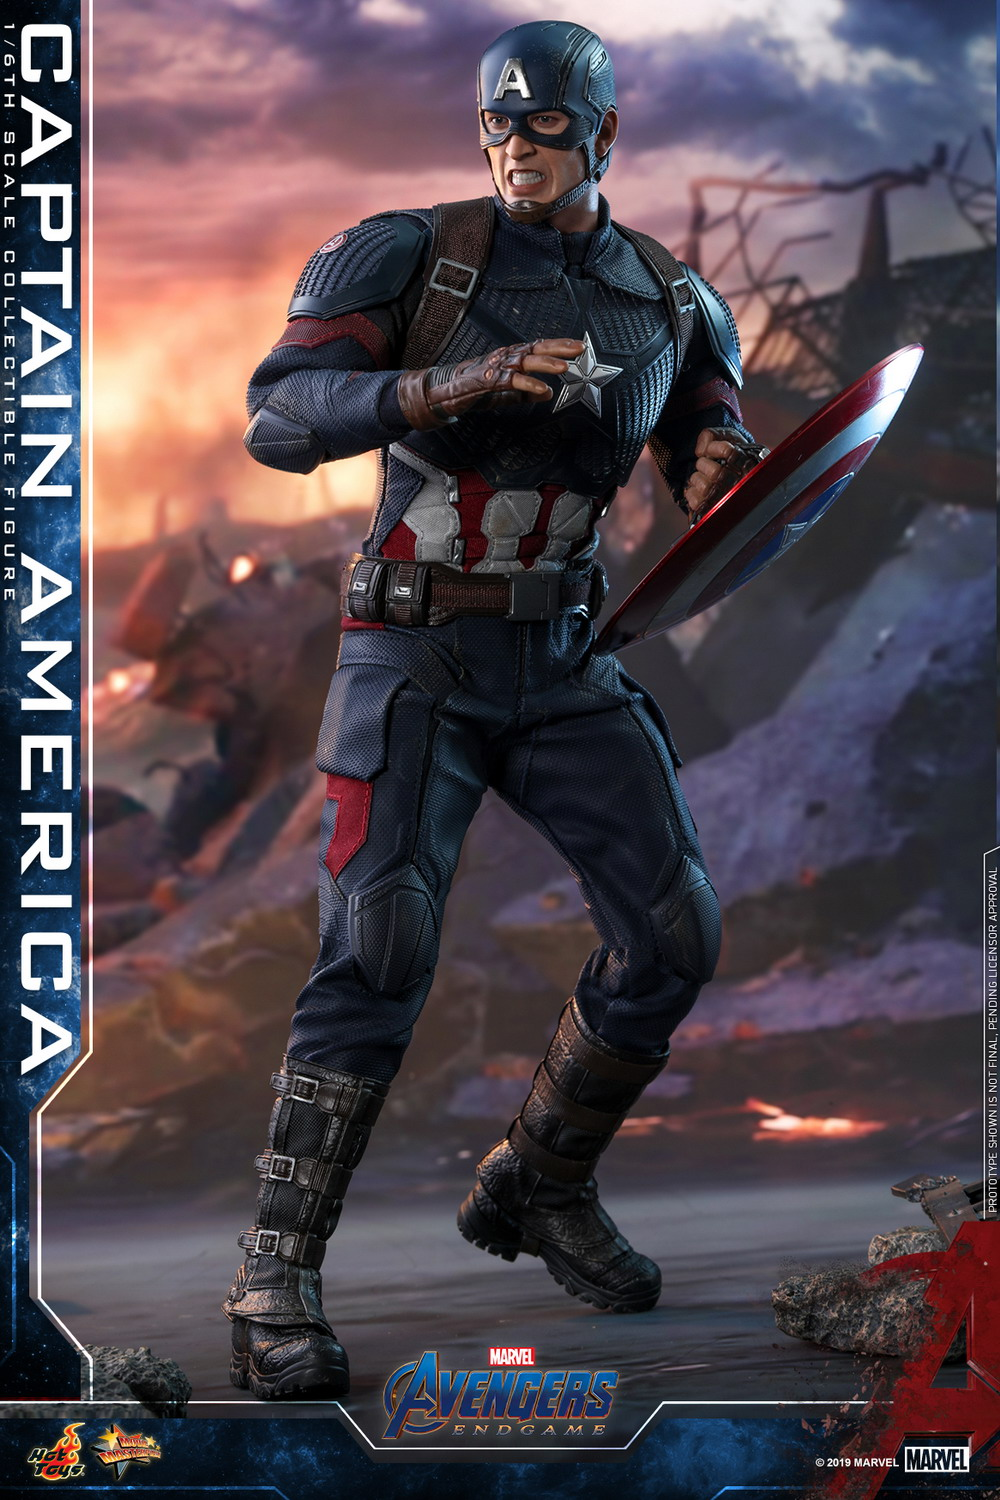 Marvel Avengers Endgame Captain America And Captain Marvel 2 Pack